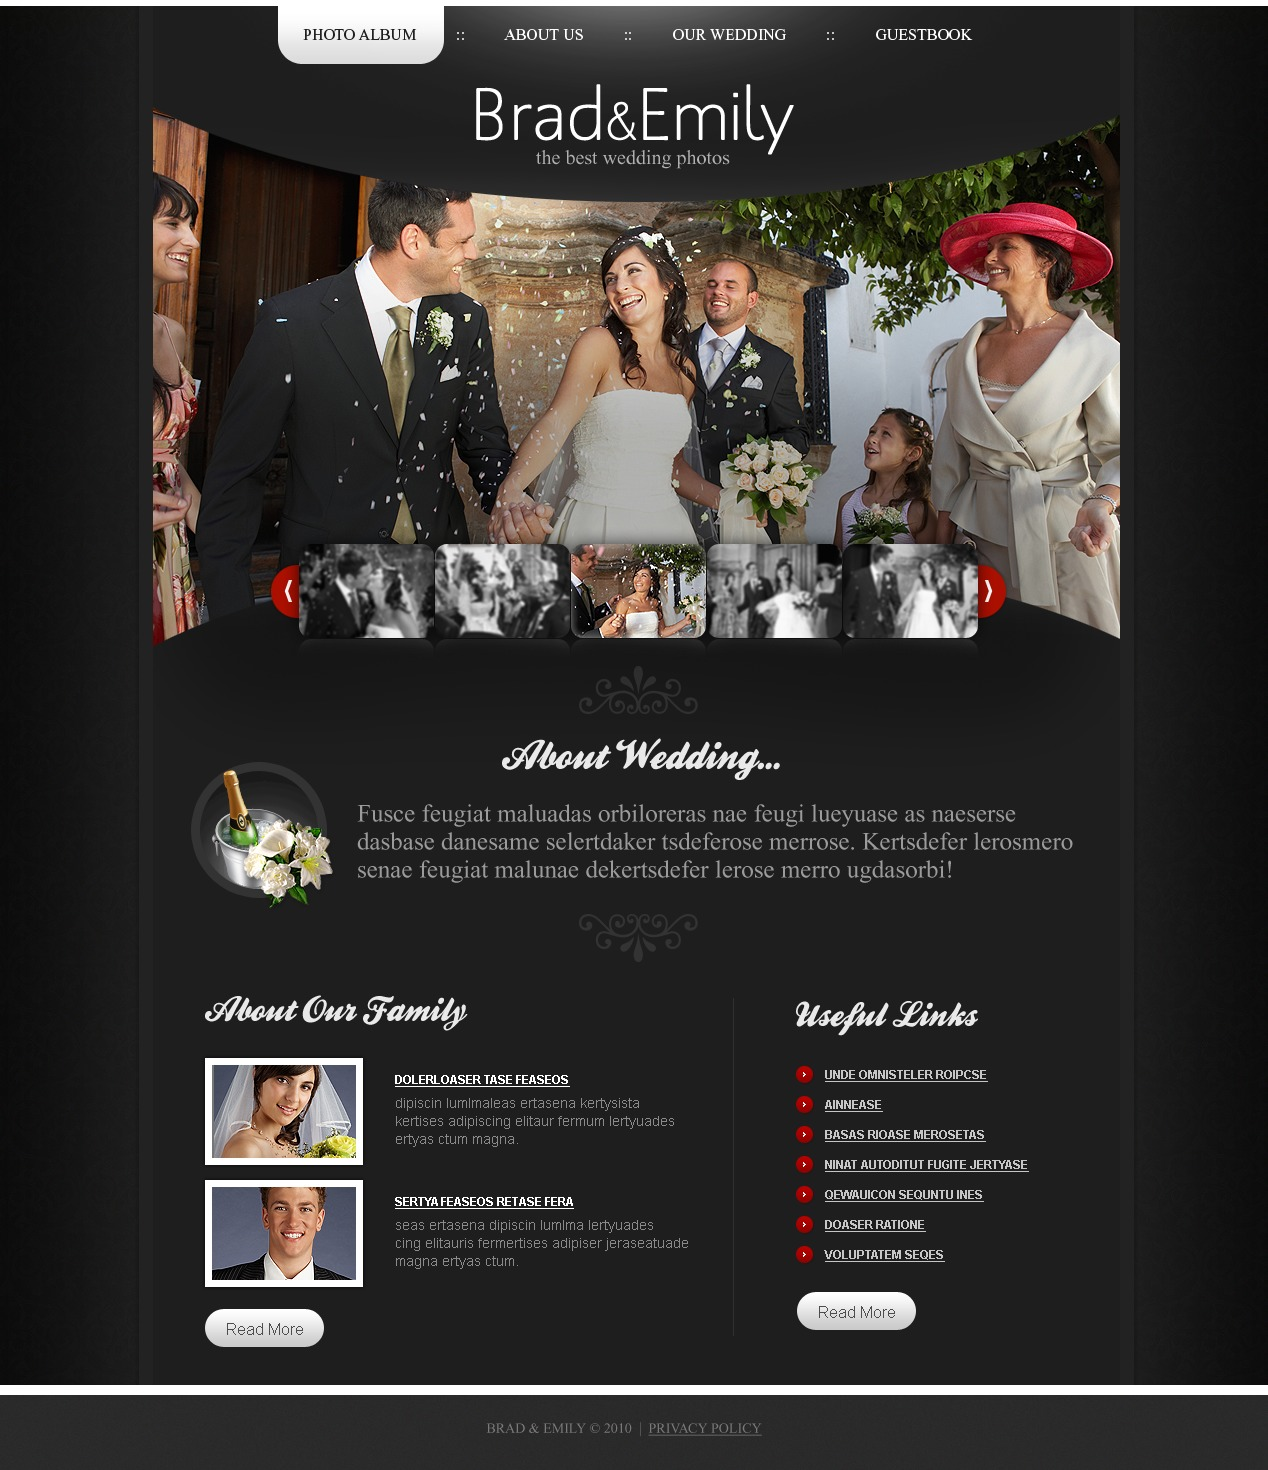 The Brad Emily Wedding PSD Design 54415, one of the best PSD templates of its kind (wedding, most popular, flash 8, wide), also known as Brad Emily wedding PSD template, album PSD template, page PSD template, photos PSD template, gallery PSD template, husband PSD template, wife PSD template, history PSD template, first PSD template, dating PSD template, engagement PSD template, bride PSD template, groom PSD template, family PSD template, ceremony PSD template, rings PSD template, flowers PSD template, guestbook PSD template, baby PSD template, friends PSD template, happiness PSD template, love PSD template, heart PSD template, couple PSD template, partners PSD template, veil PSD template, success PSD template, lover PSD template, dress PSD template, sweetheart PSD template, honey PSD template, moon PSD template, marriage and related with Brad Emily wedding, album, page, photos, gallery, husband, wife, history, first, dating, engagement, bride, groom, family, ceremony, rings, flowers, guestbook, baby, friends, happiness, love, heart, couple, partners, veil, success, lover, dress, sweetheart, honey, moon, marriage, etc.